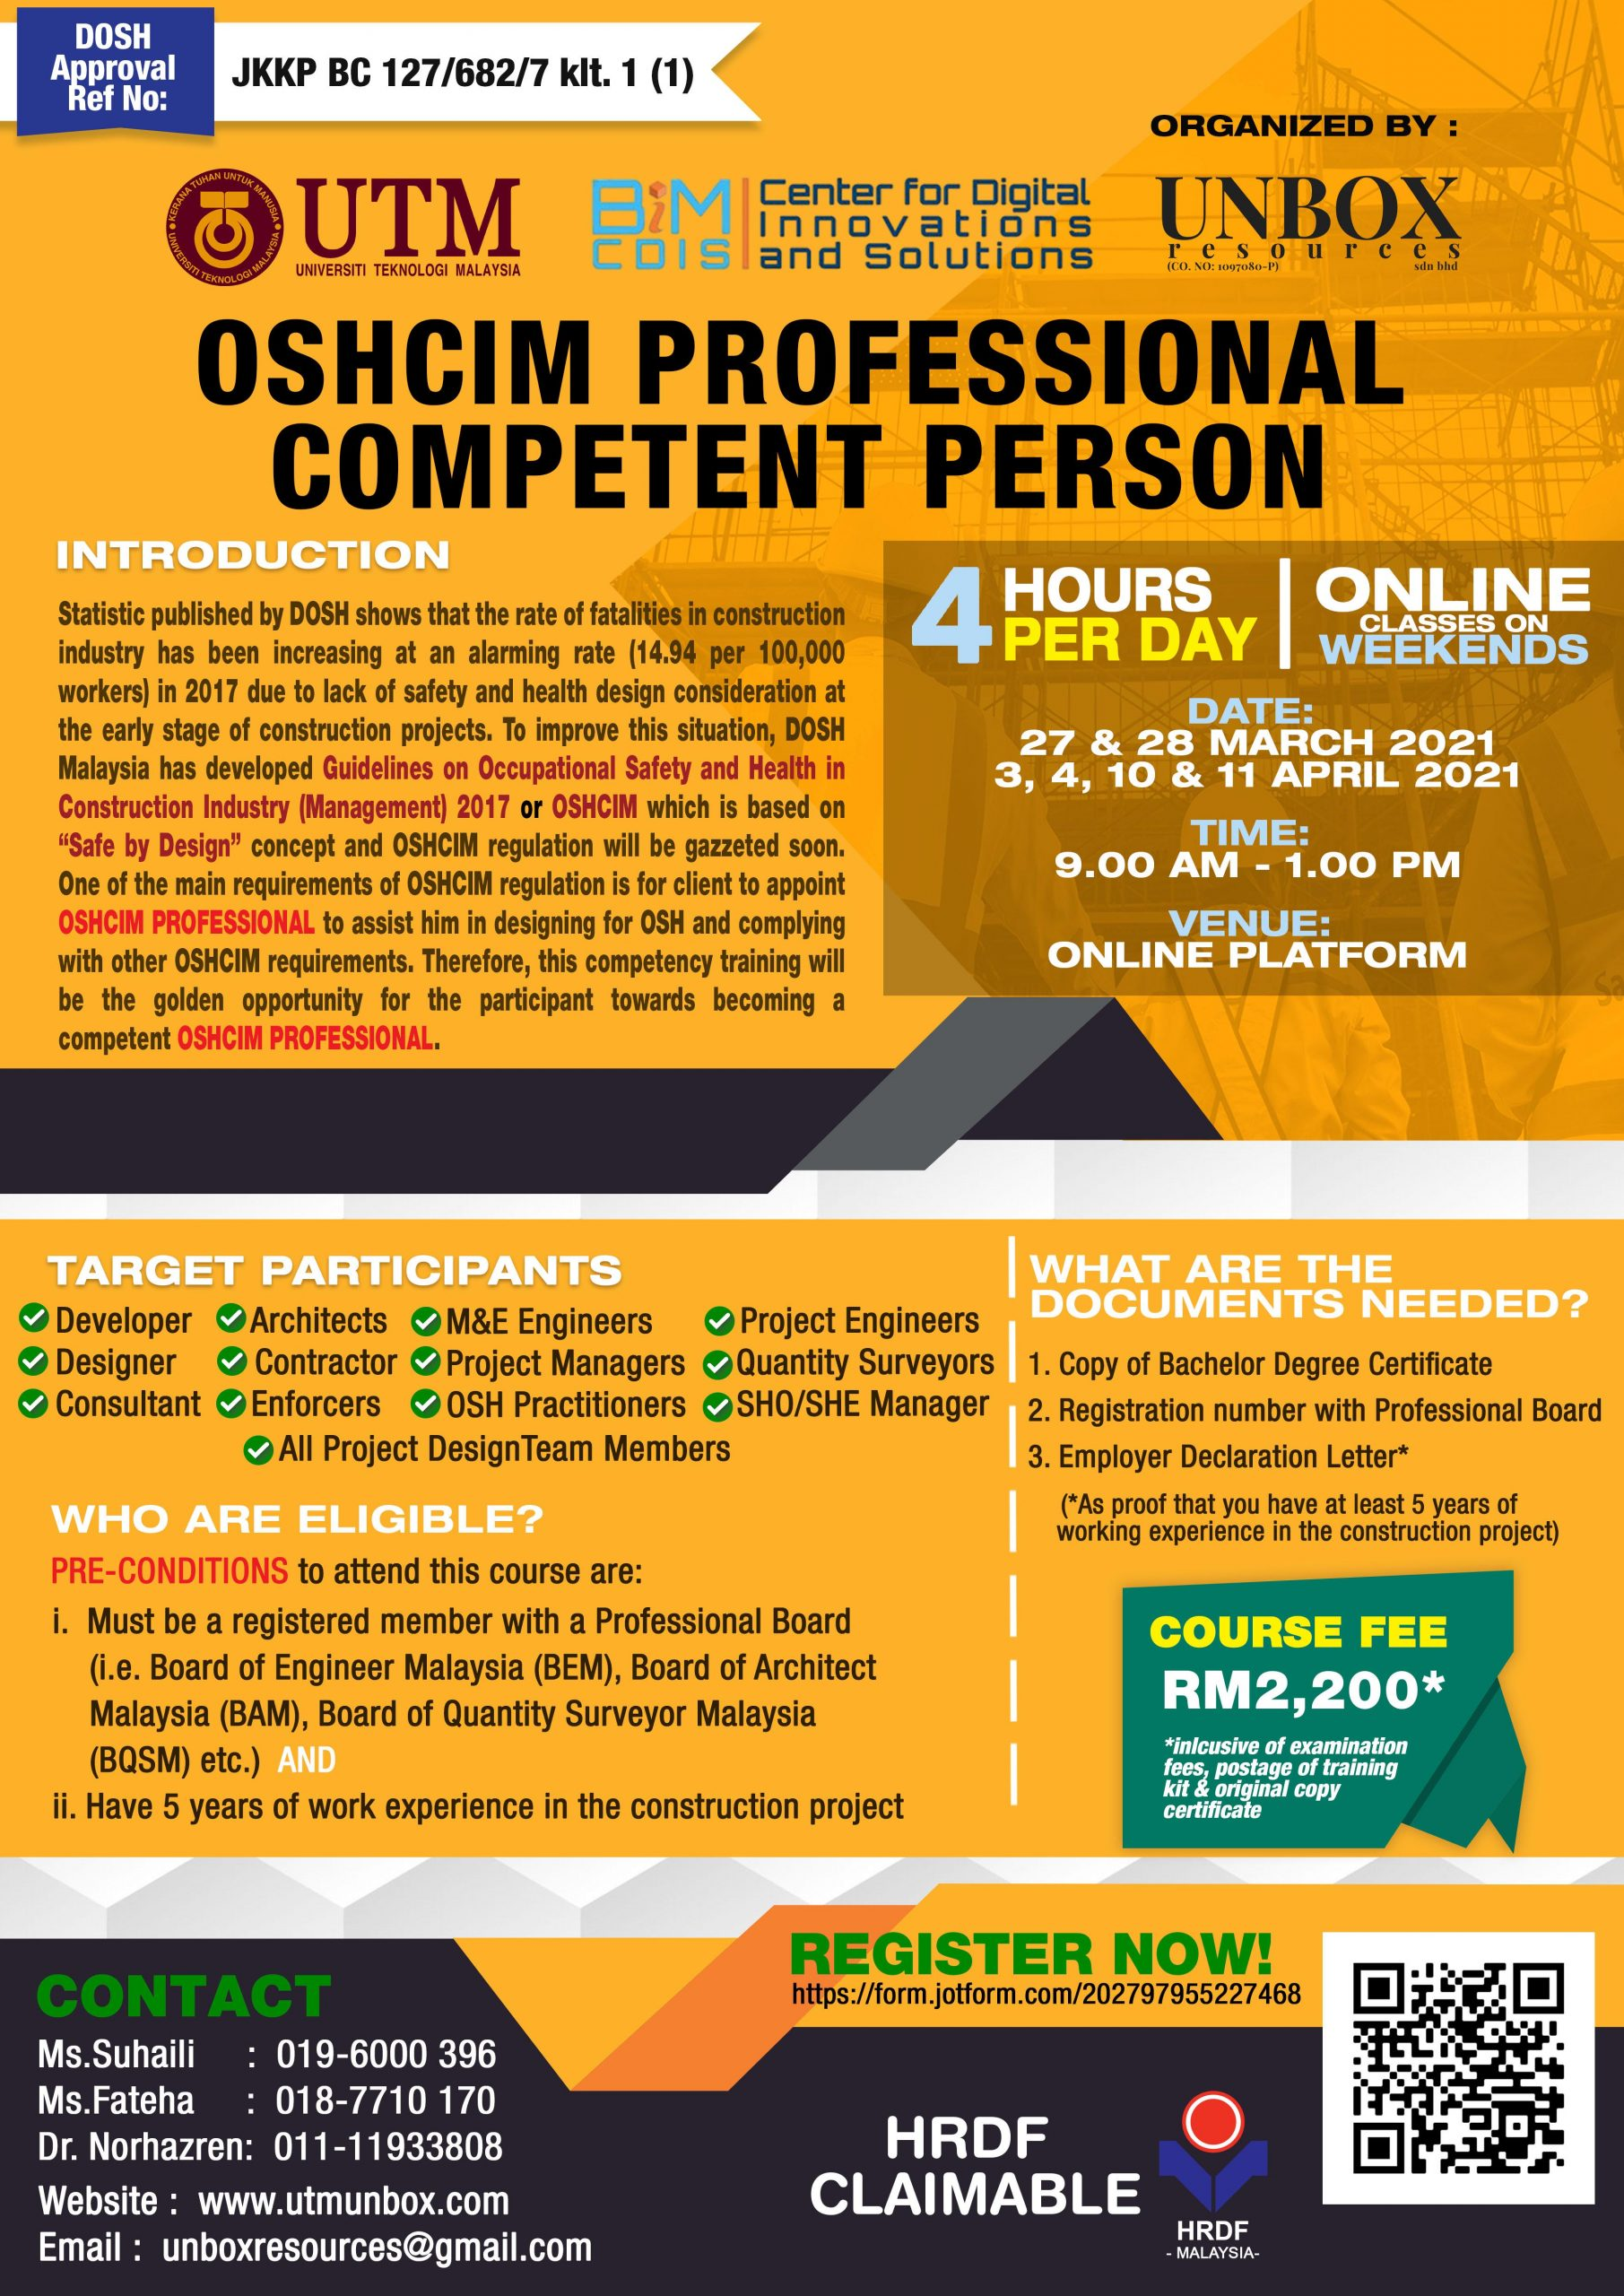 OSHCIM PROFESSIONAL COMPETENT PERSON (27 & 28 MARCH 2021) (3,4,10 & 11 APRIL 2021) (ZOOM ONLINE)